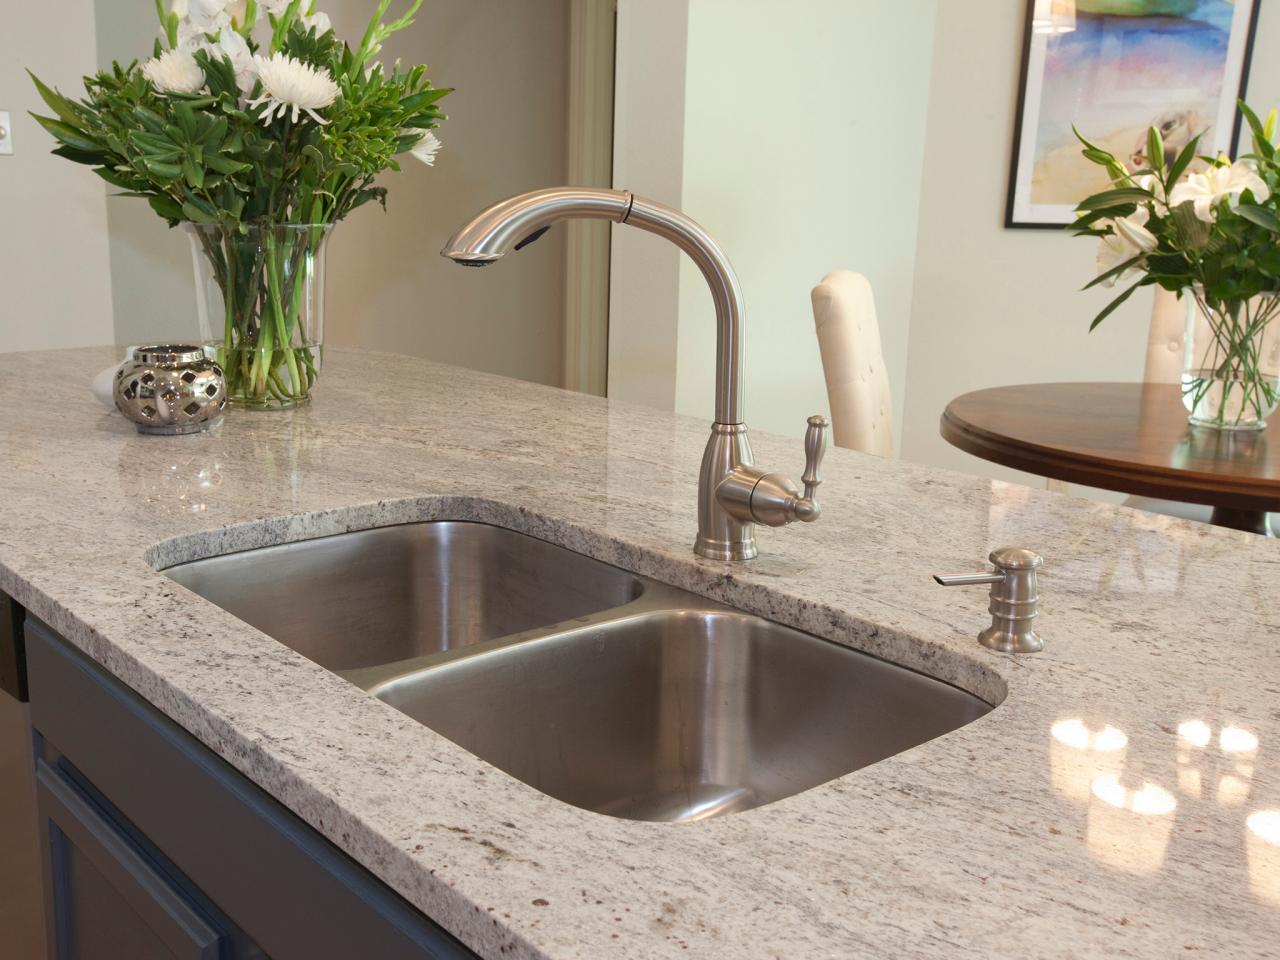 Countertop Replacement 5 Things You Need To Remember